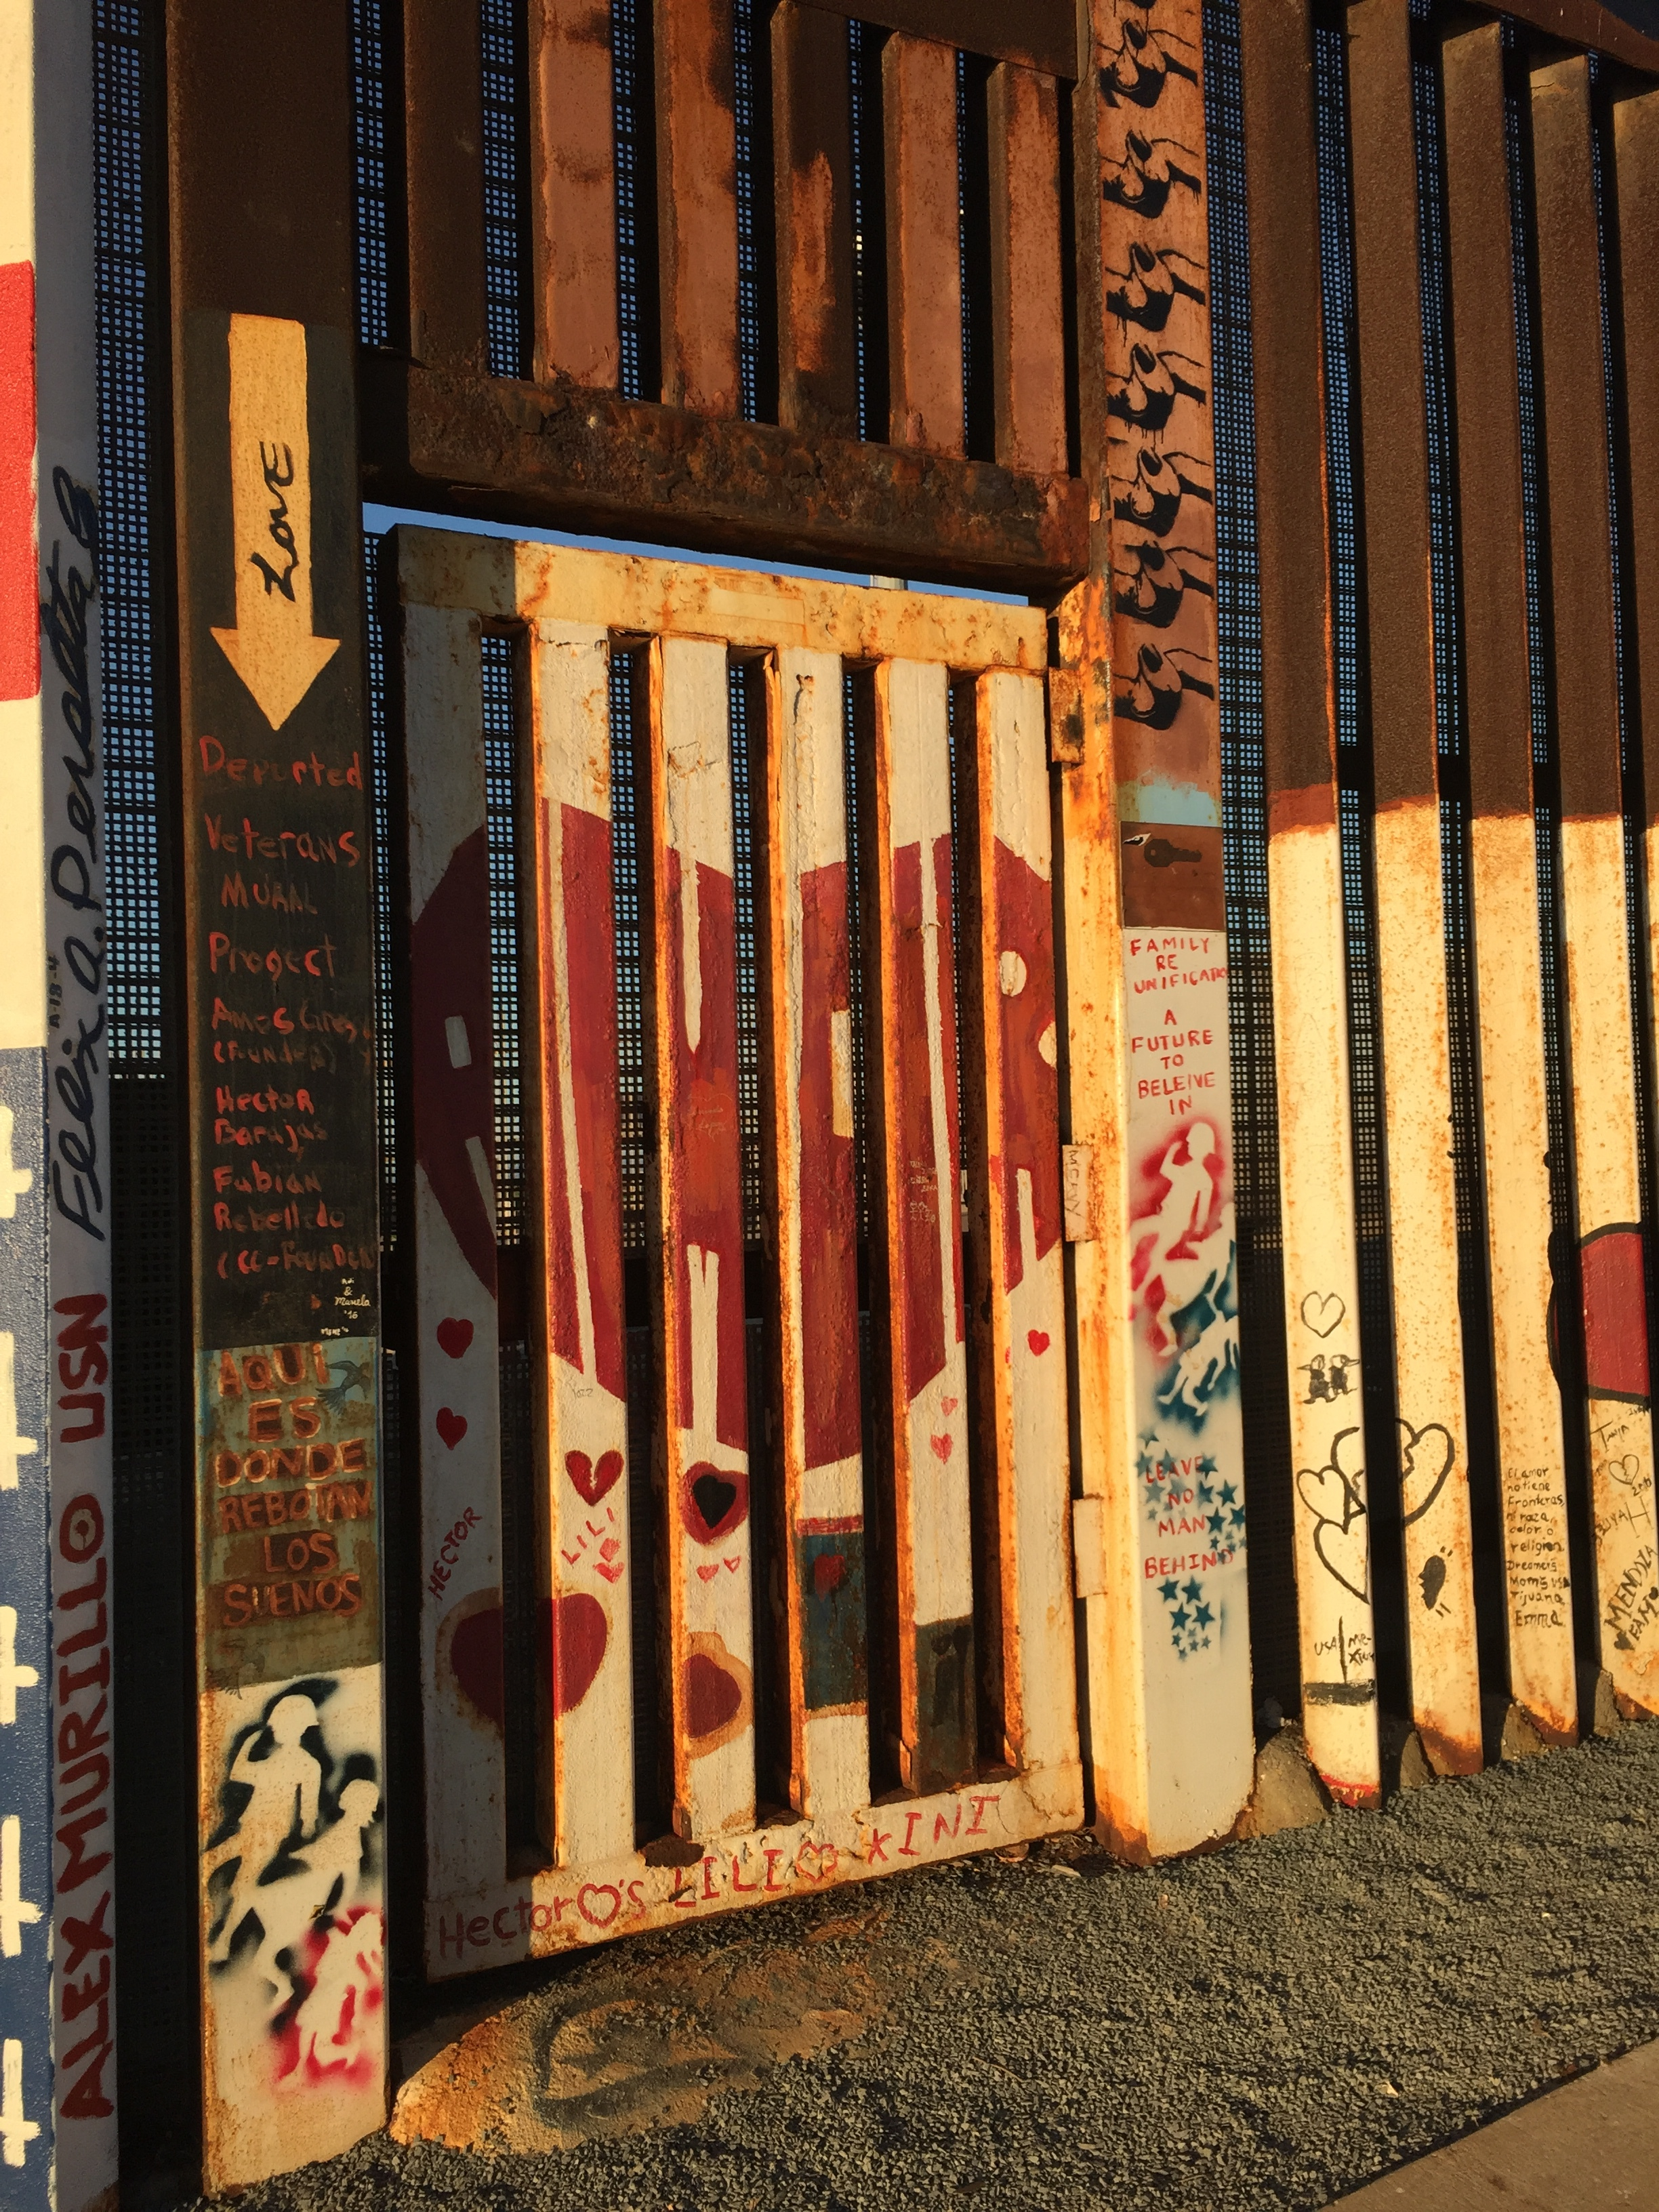 Image of door from Mexican side of border wall with US. Photo credit: Abraham A. Joven, Nov. 2016